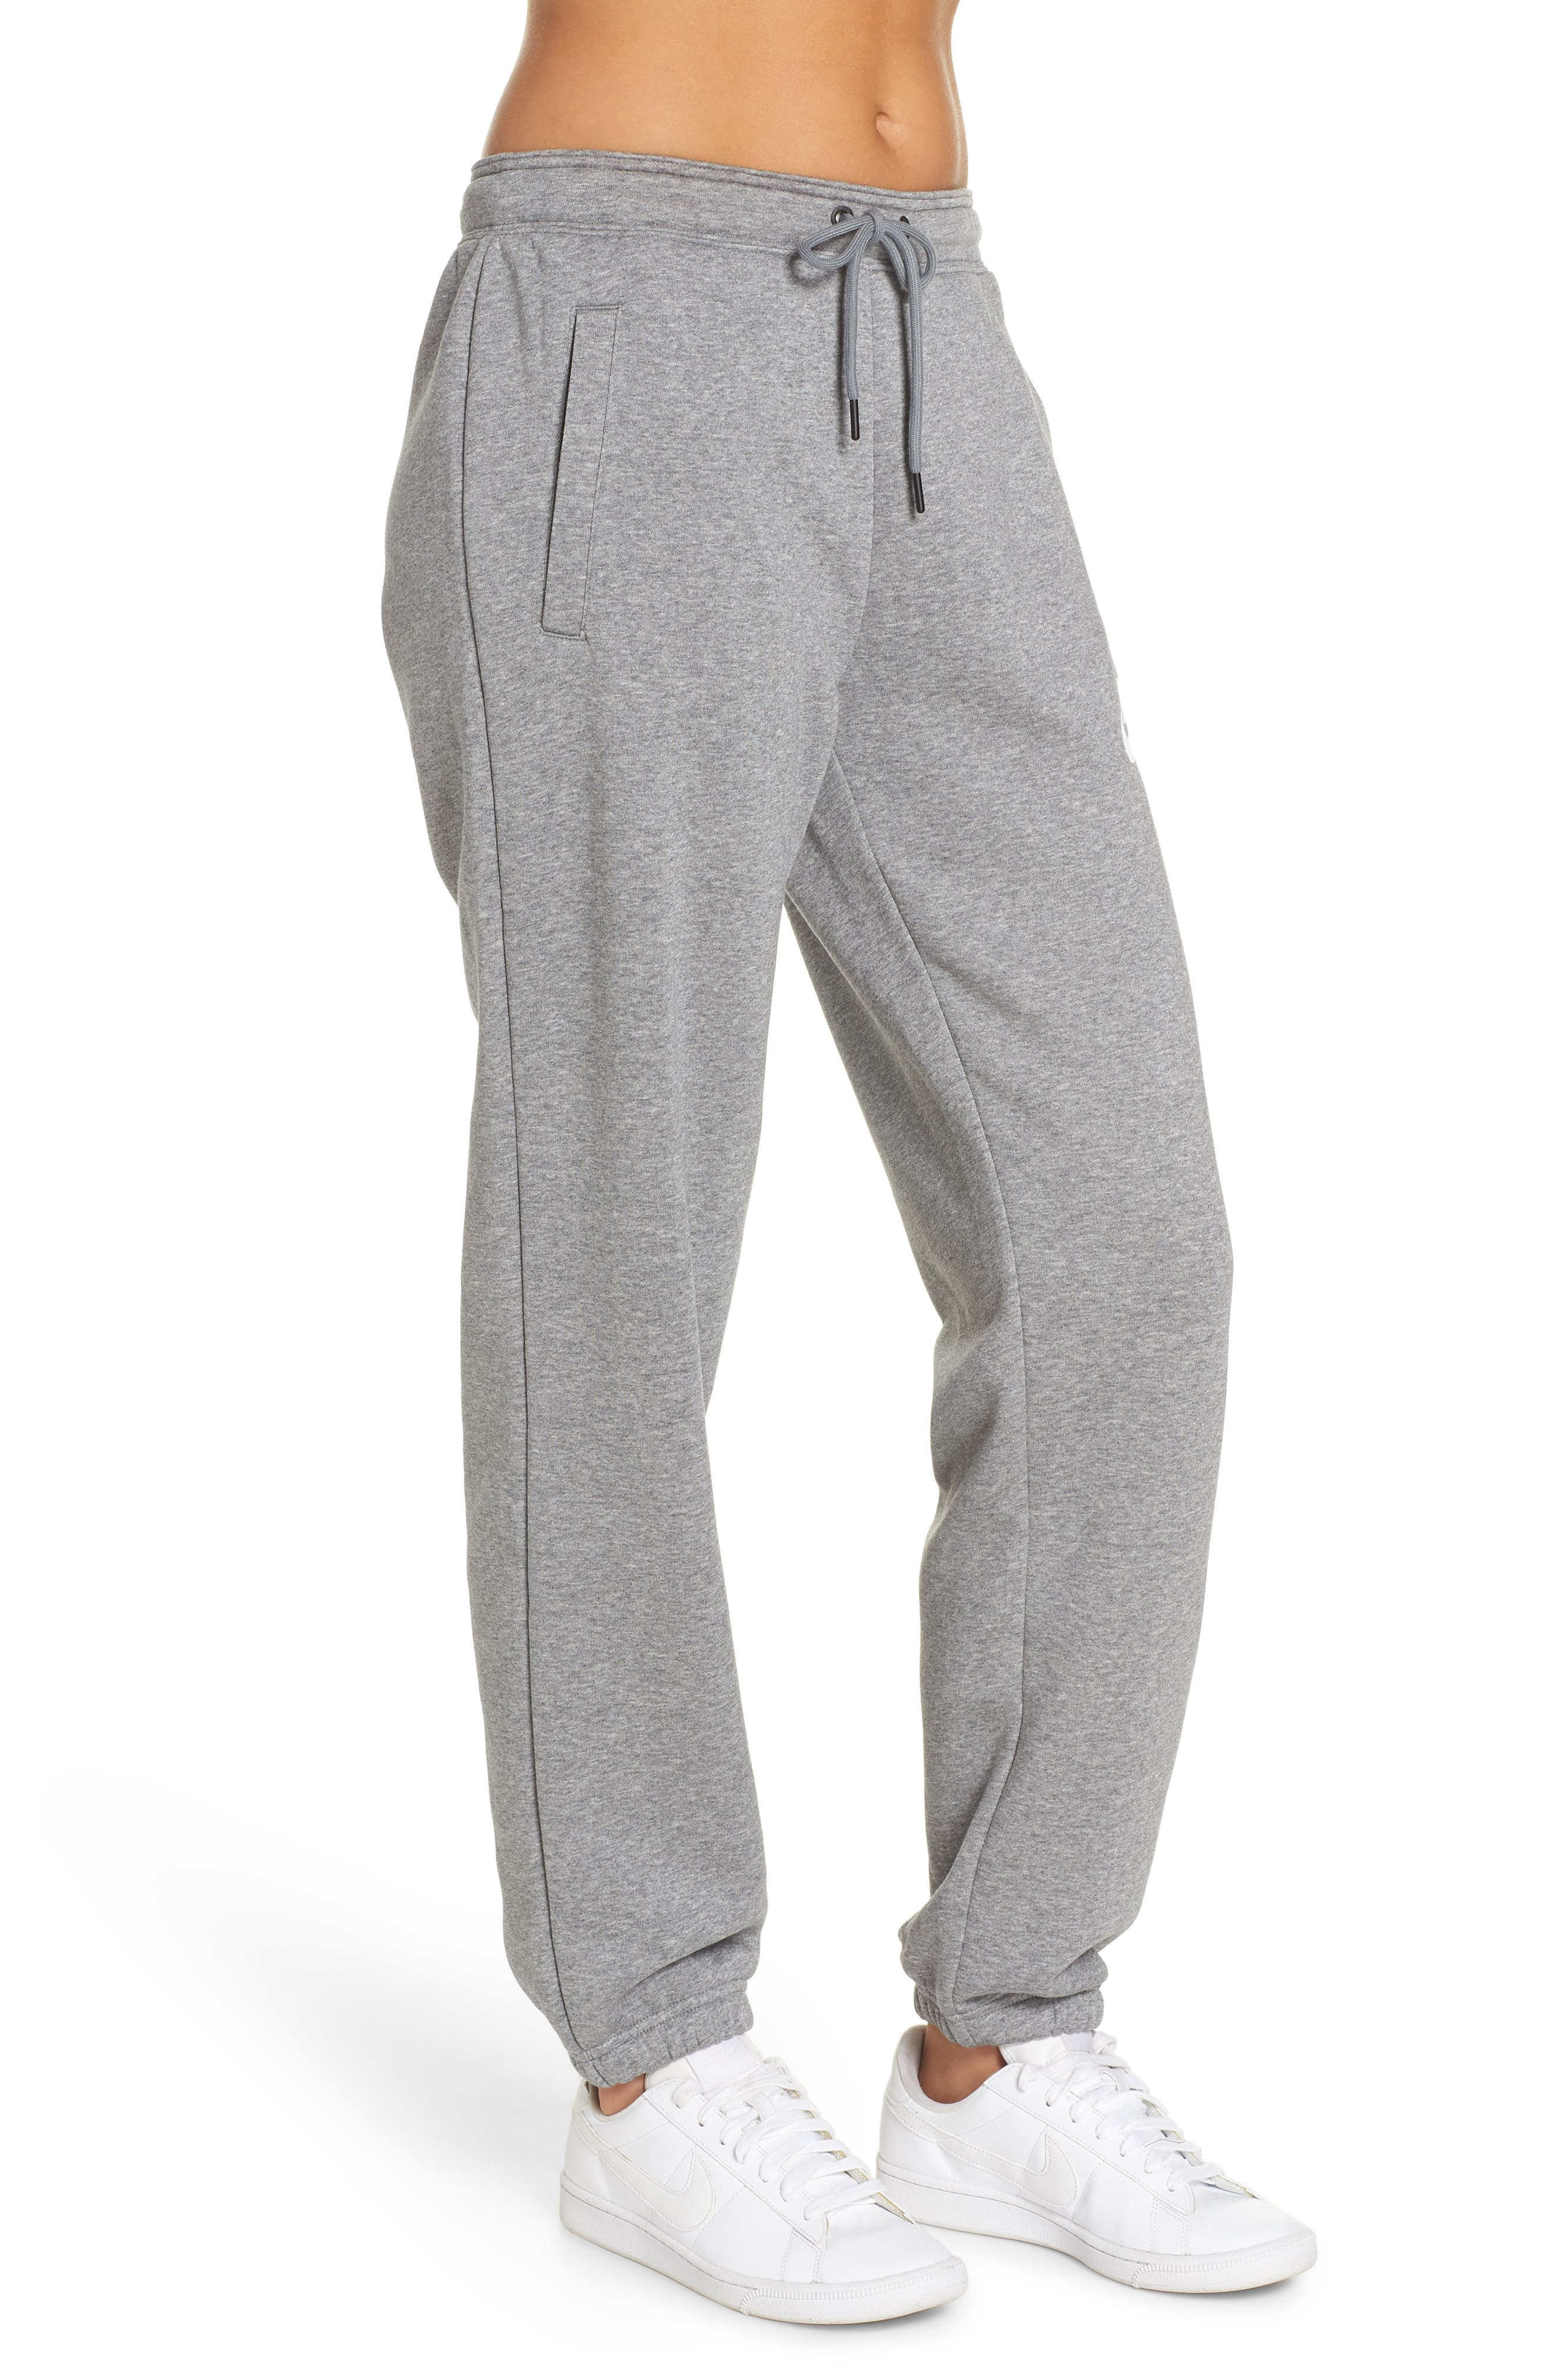 NSW Rally Pants,                             Alternate thumbnail 3, color,                             CARBON HEATHER/ COOL GREY